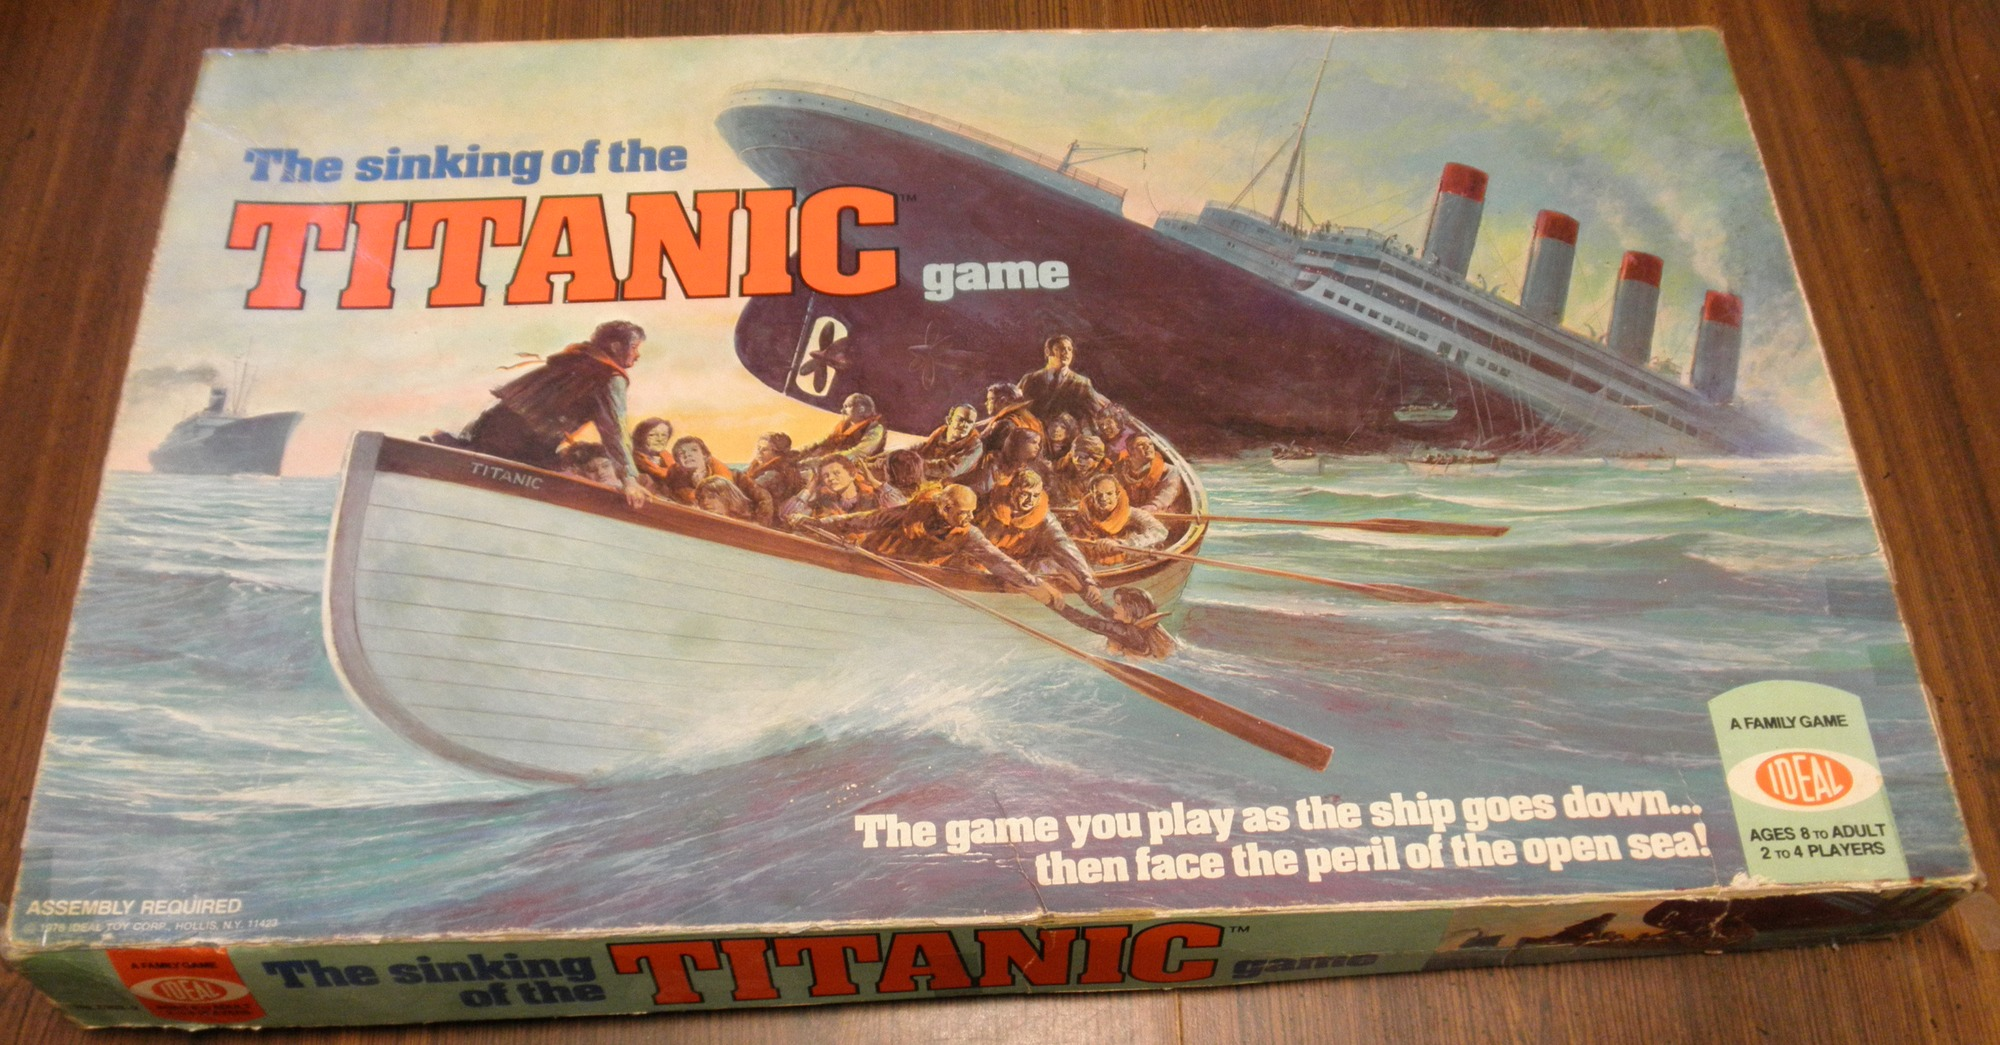 Sinking of the Titanic Box